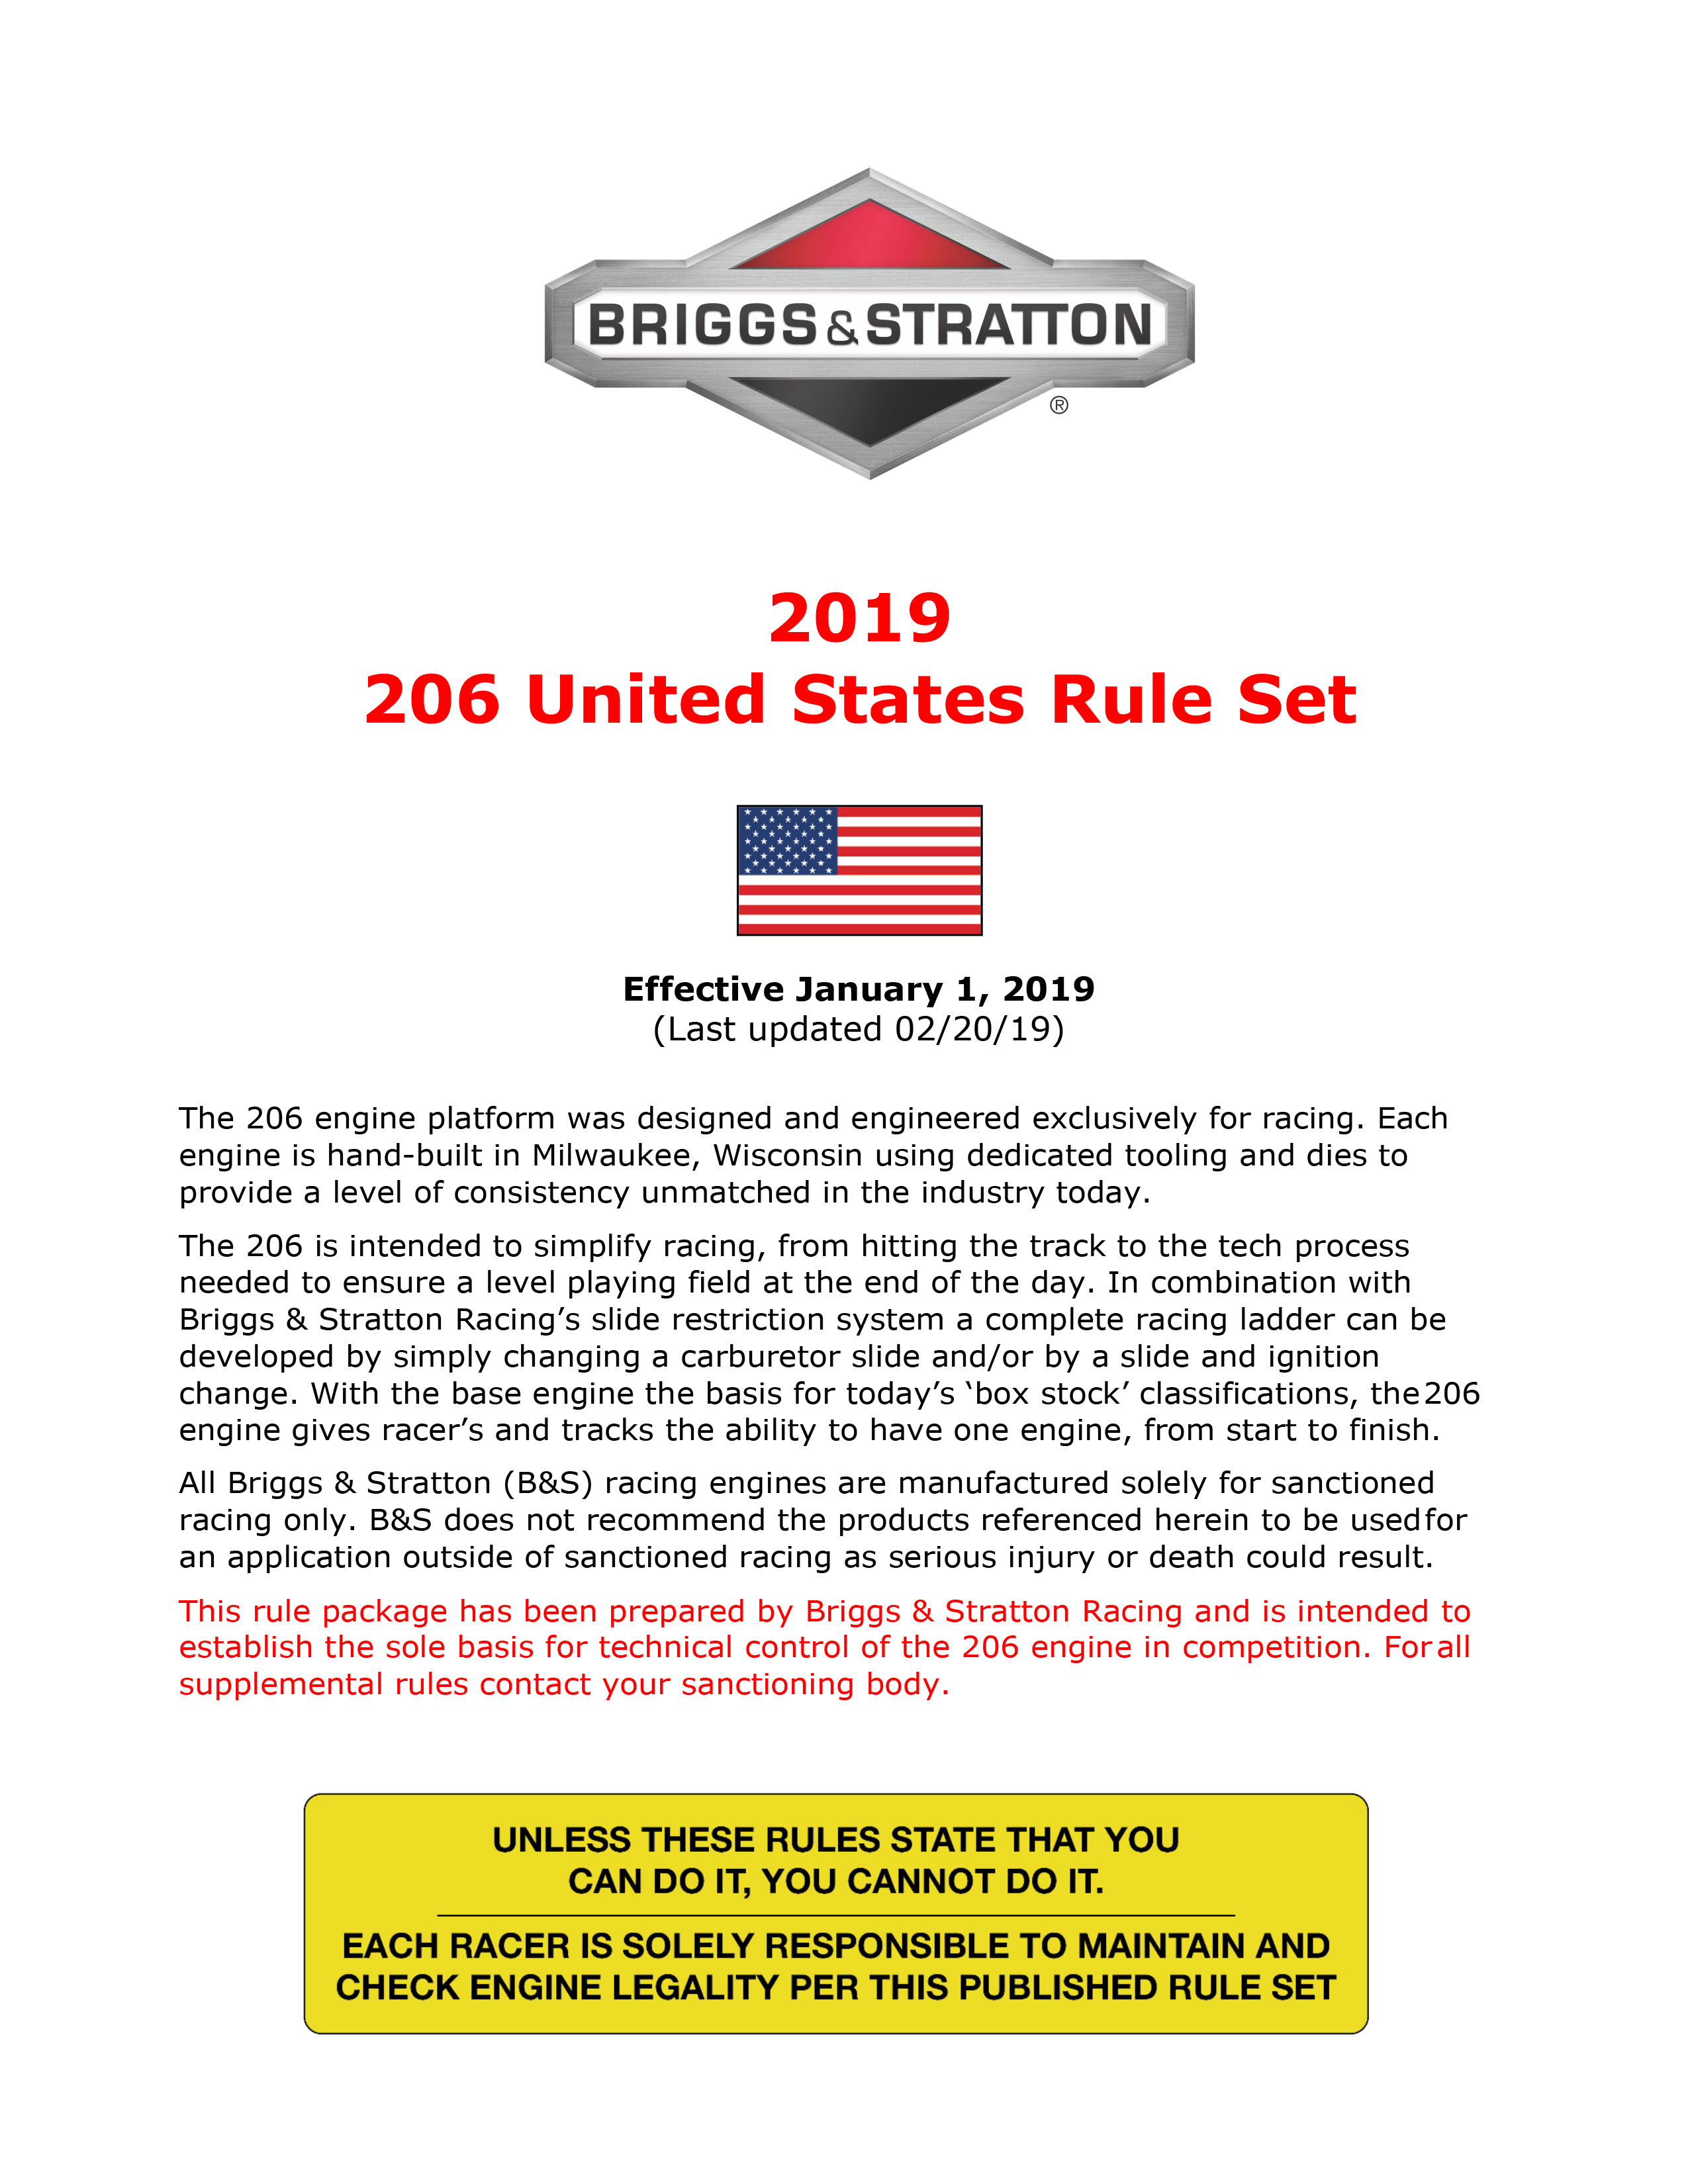 2019 206 United States Rule Set